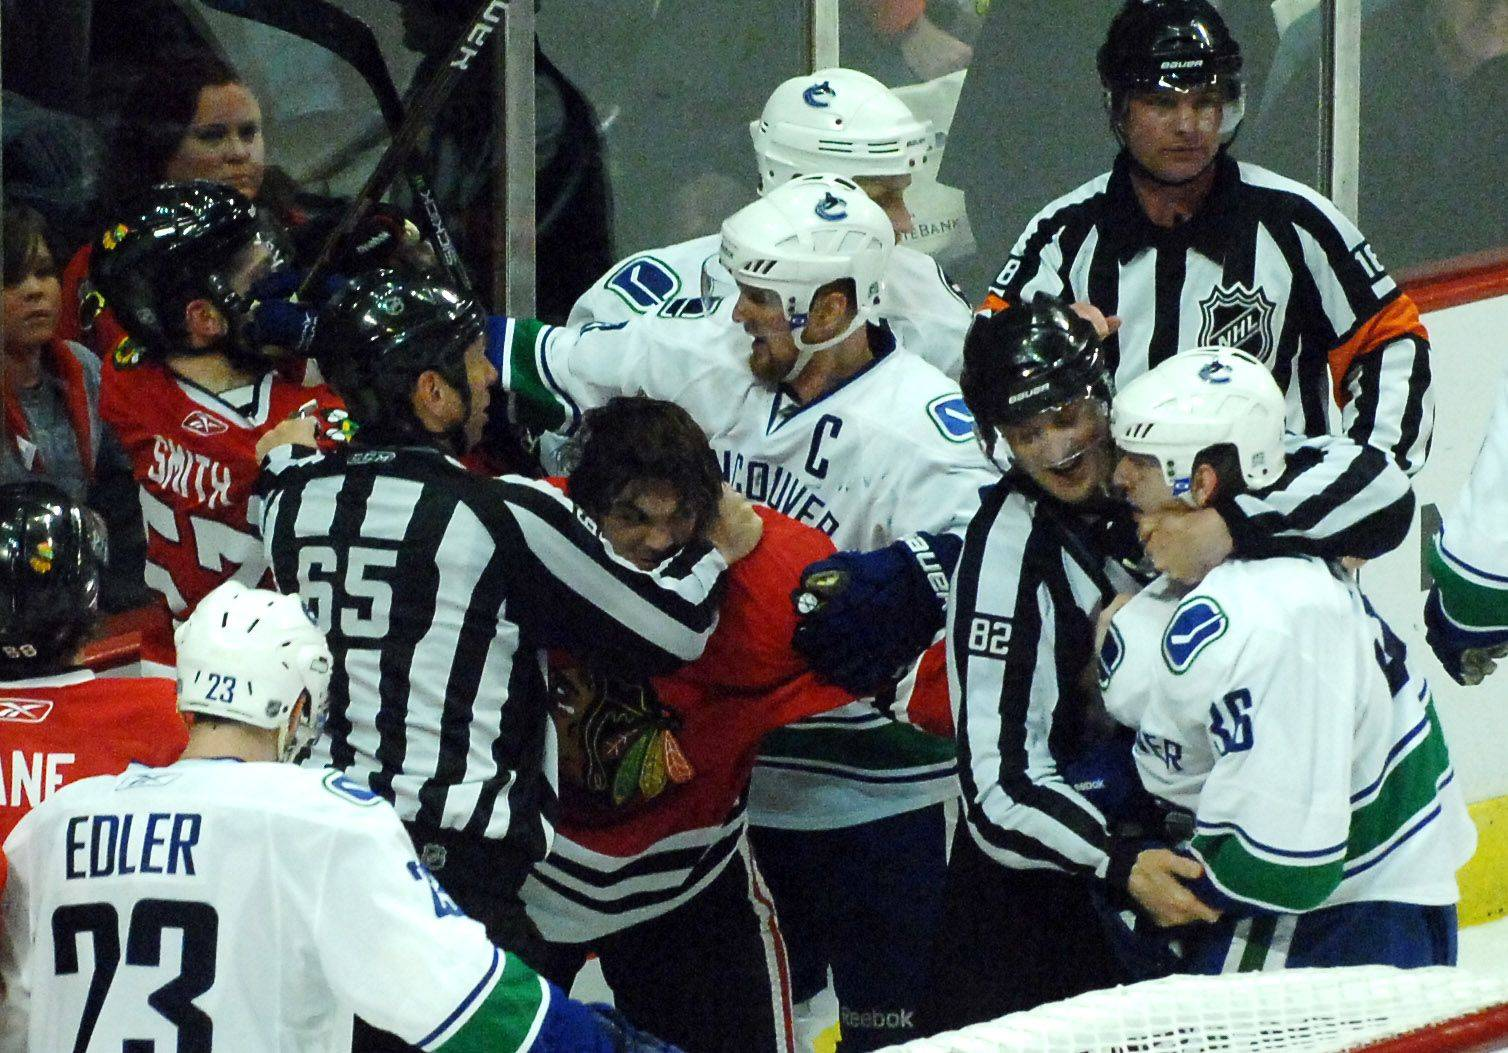 Chicago Blackhawks center Michael Frolik (67) and Vancouver Canucks right wing Jannik Hansen (36) are separated by the officials as the final seconds tick off the clock.